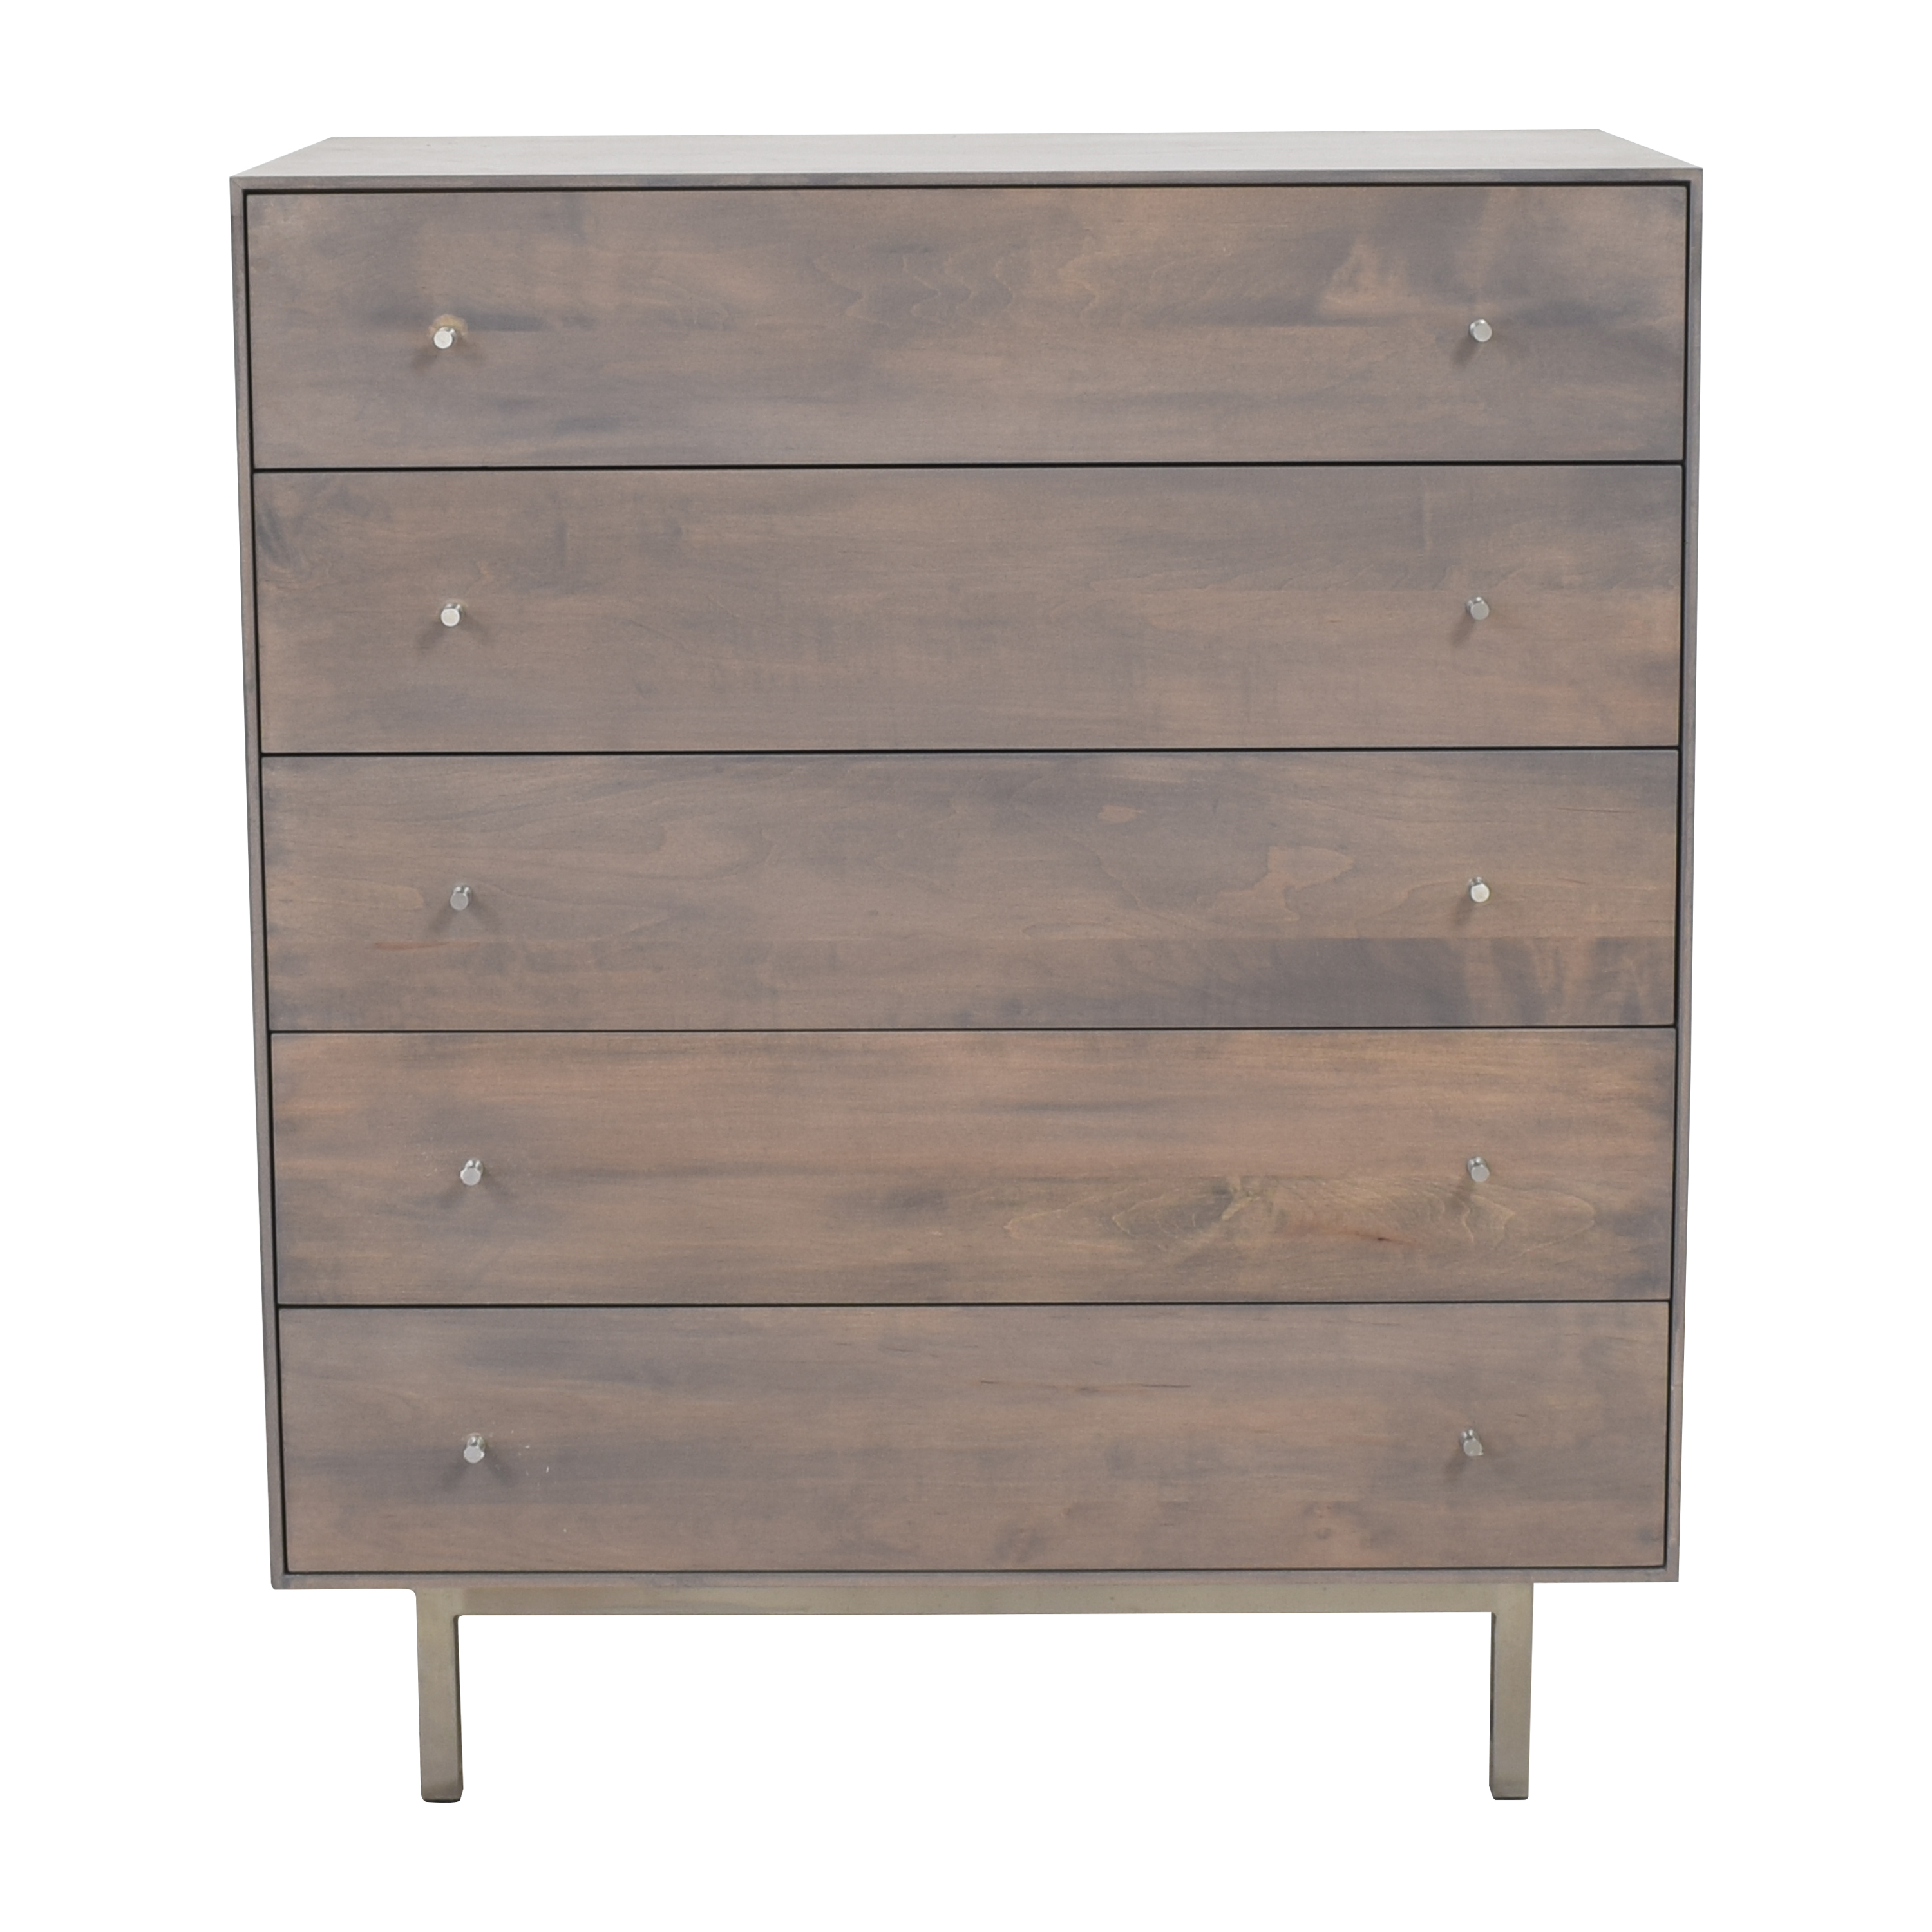 Room & Board Room & Board Hudson Five Drawer Chest coupon